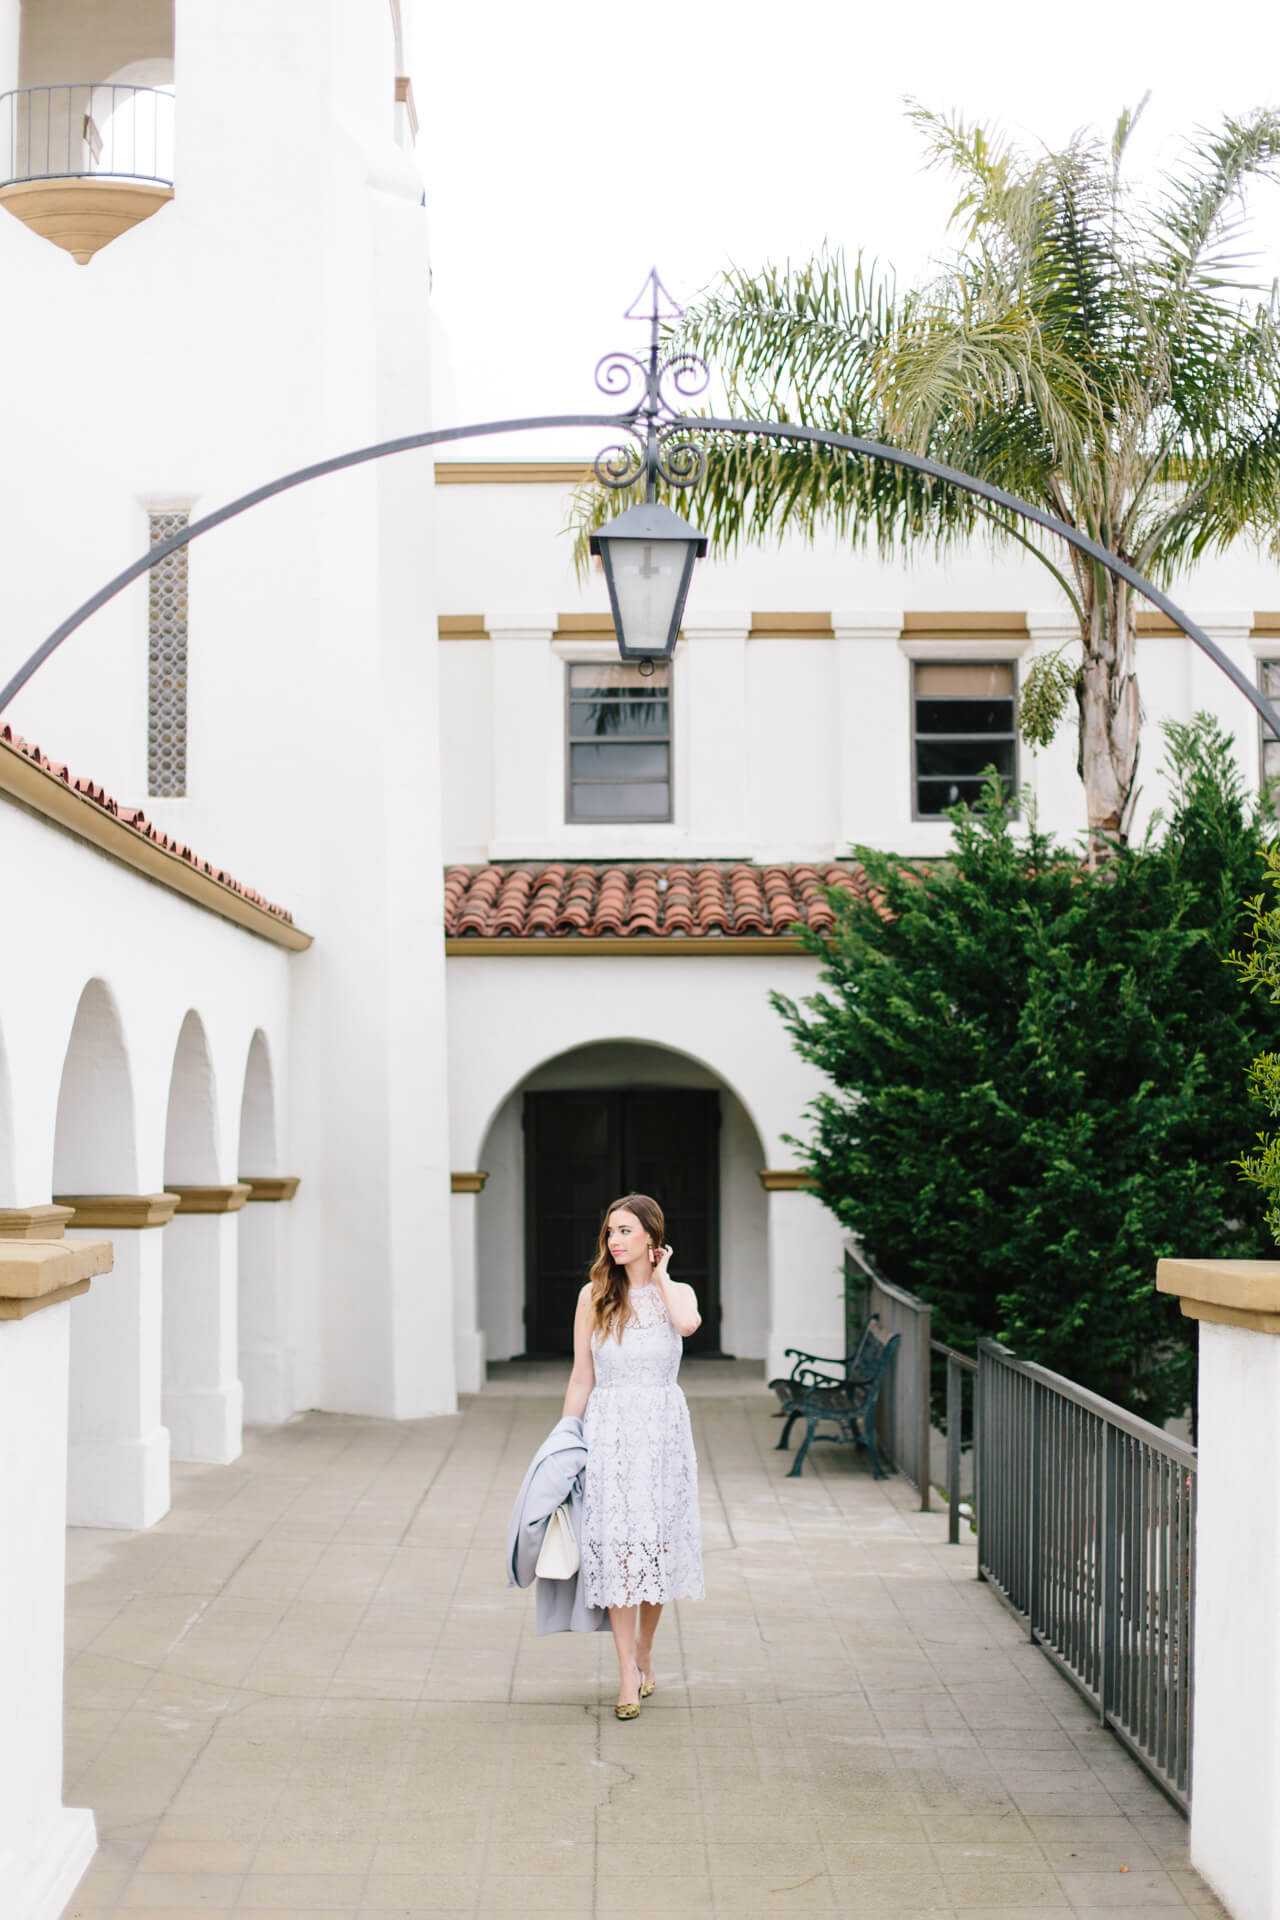 monochromatic with lavender- early spring outfit inspiration from M Loves M